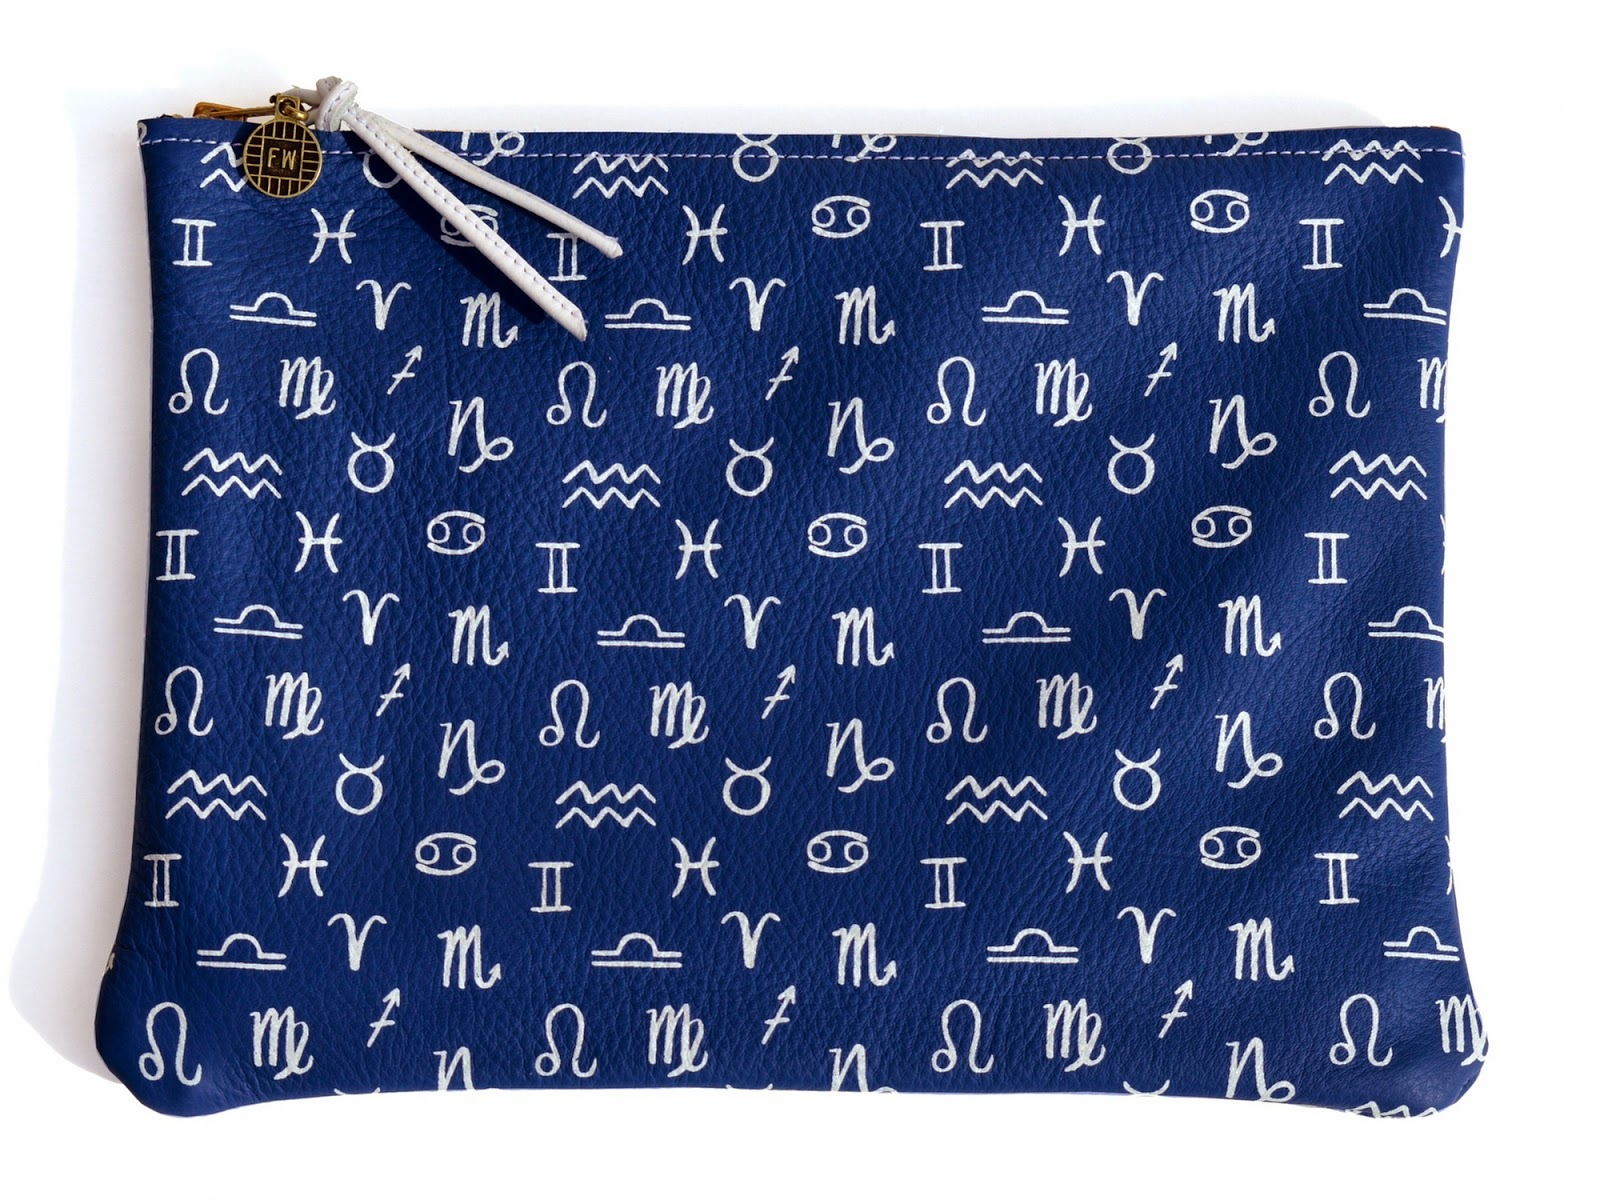 uk style fashion blog printed clutch zodiac